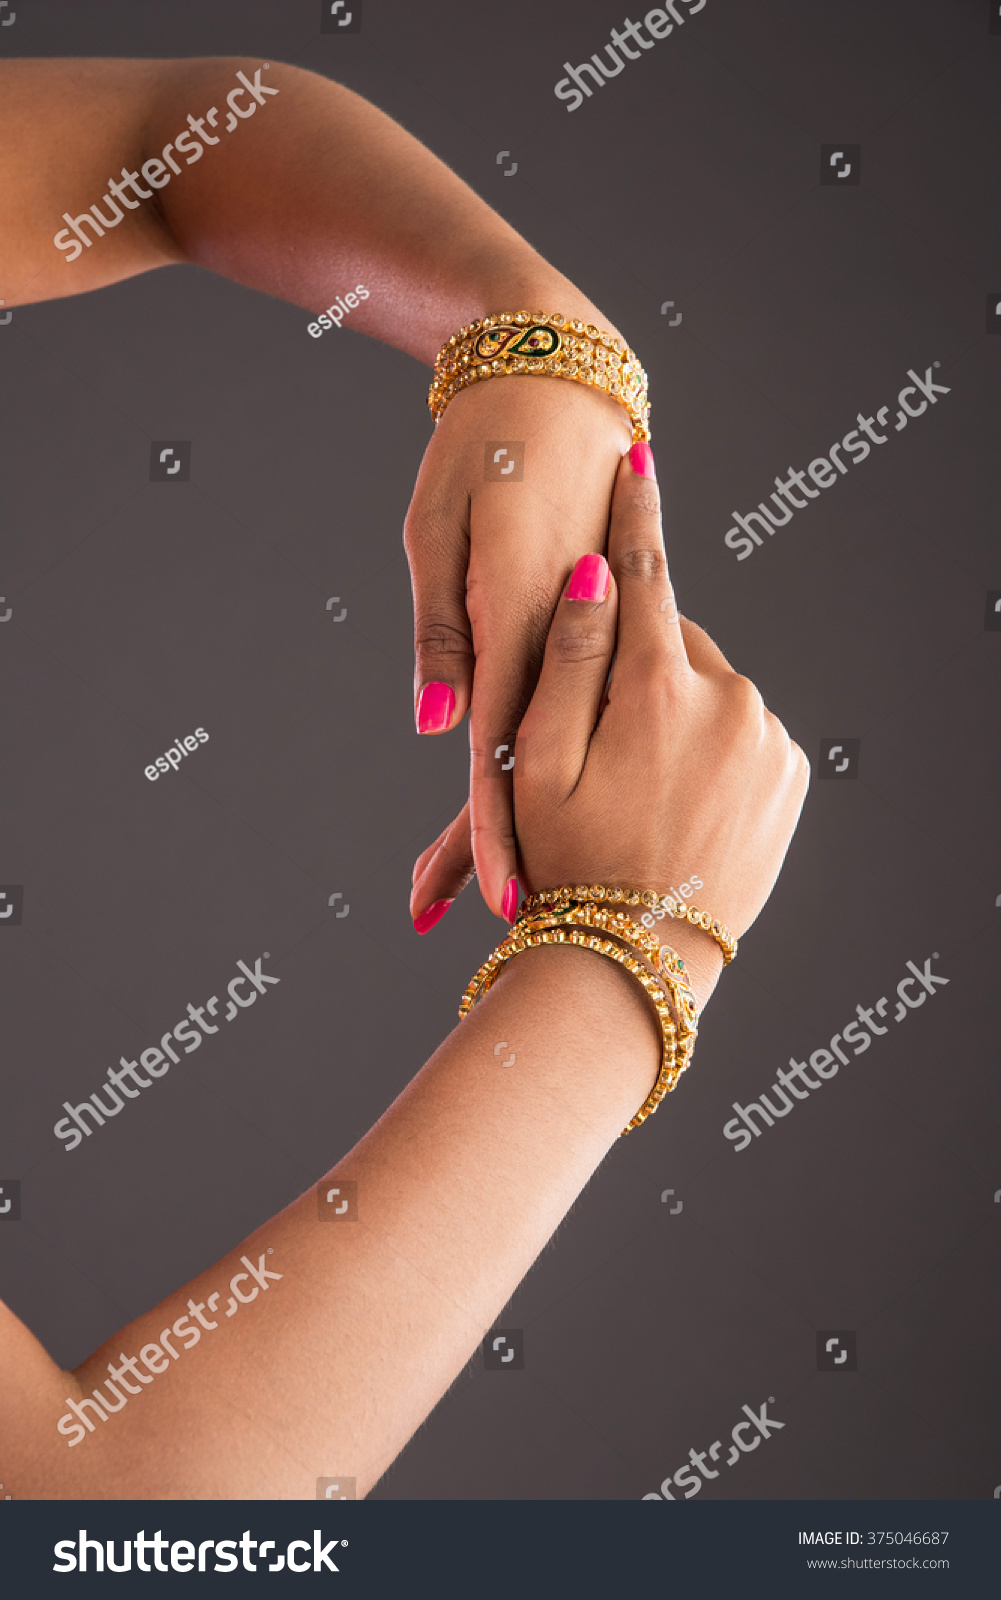 Gold Bangles Hand Graceful Poses Girls Stock Photo 375046687 ...